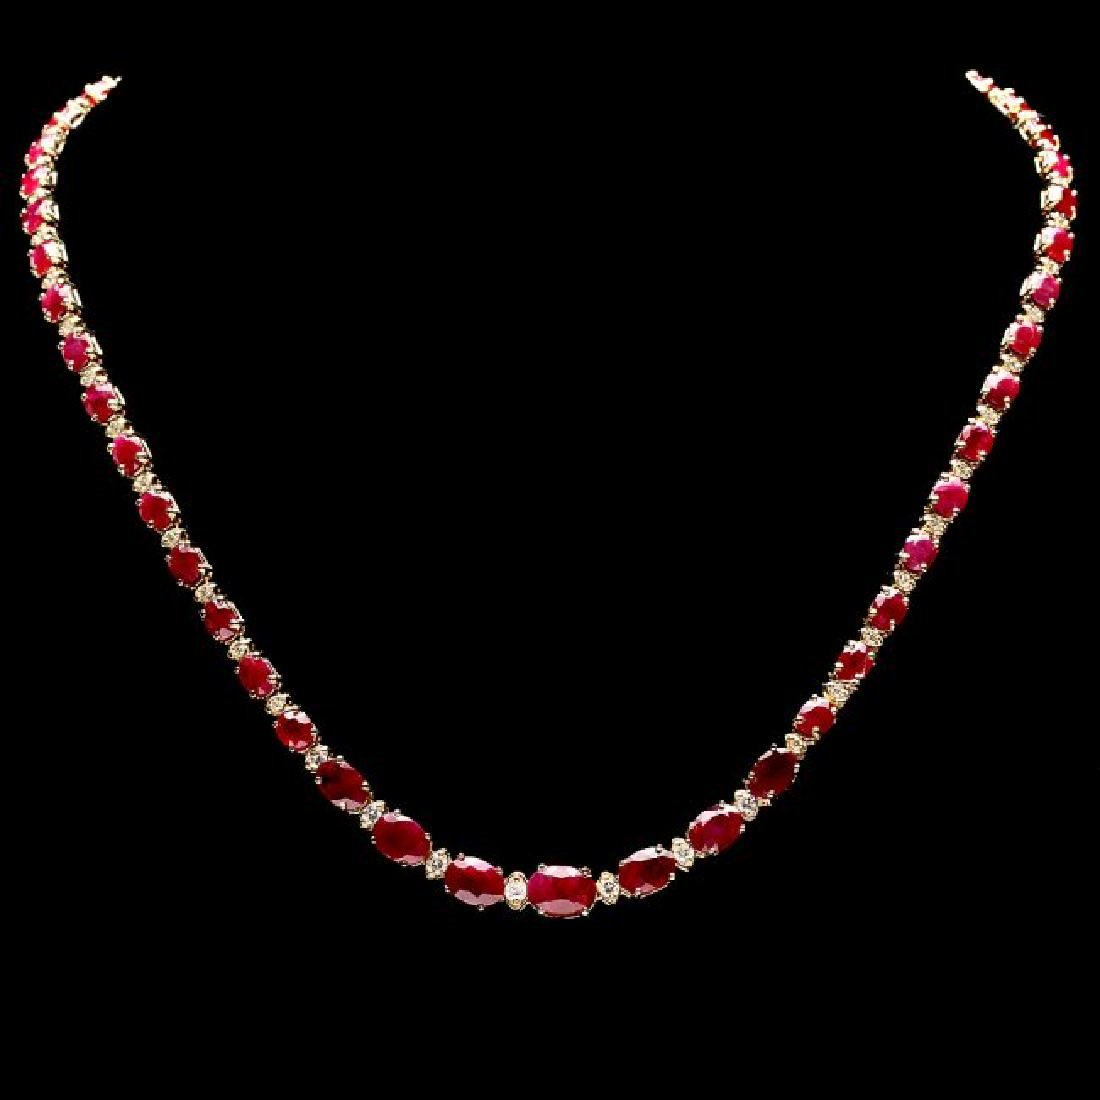 14k Gold 24.00ct Ruby 1.00ct Diamond Necklace